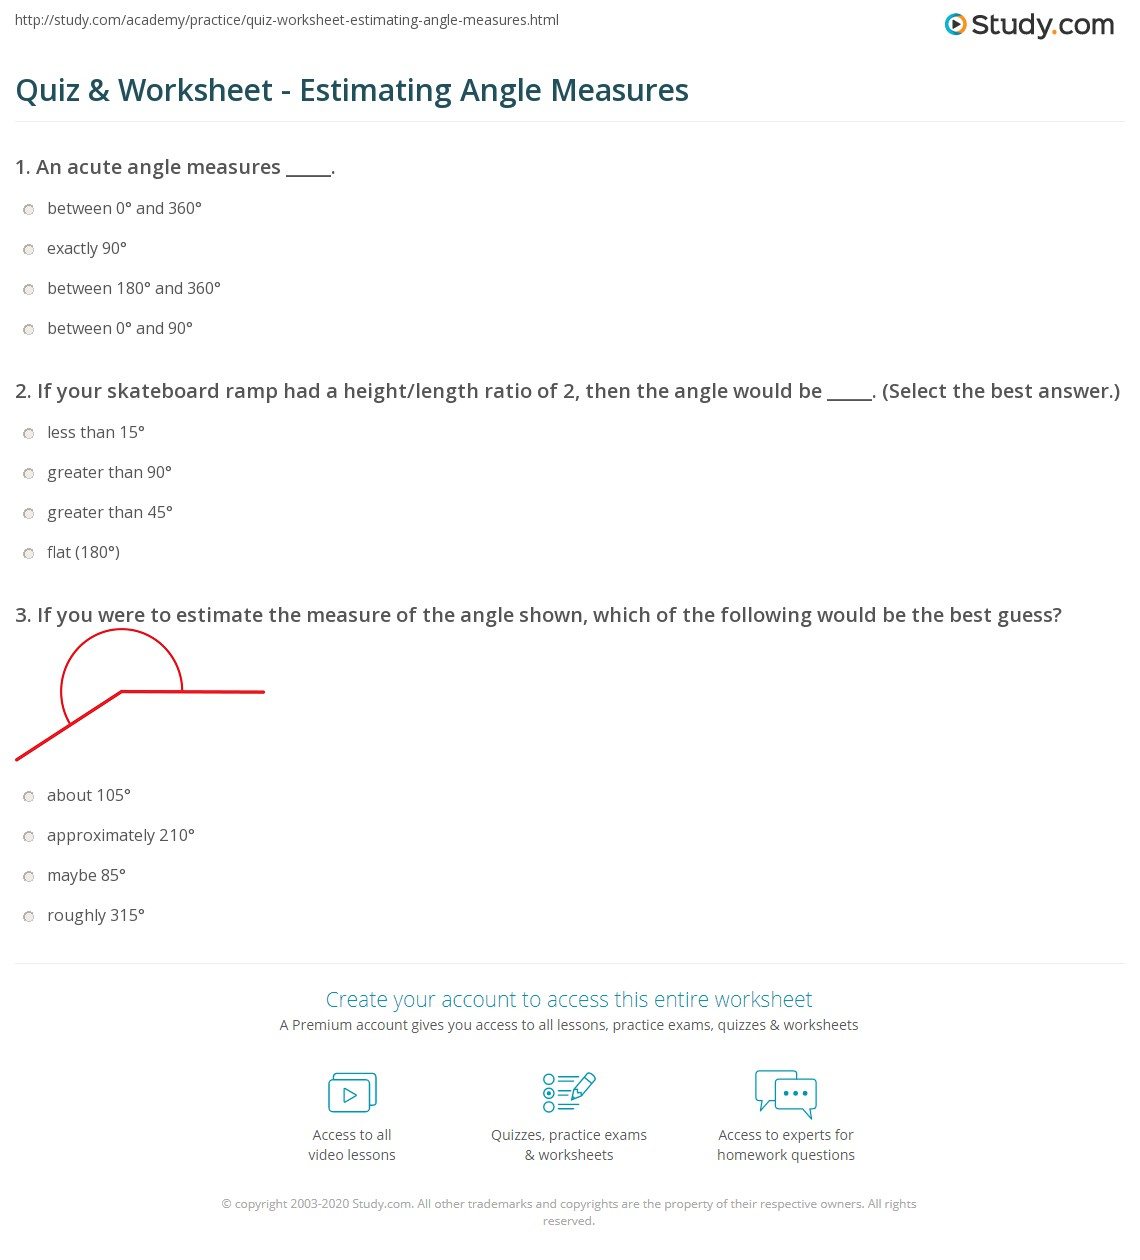 Quiz Worksheet Estimating Angle Measures Study